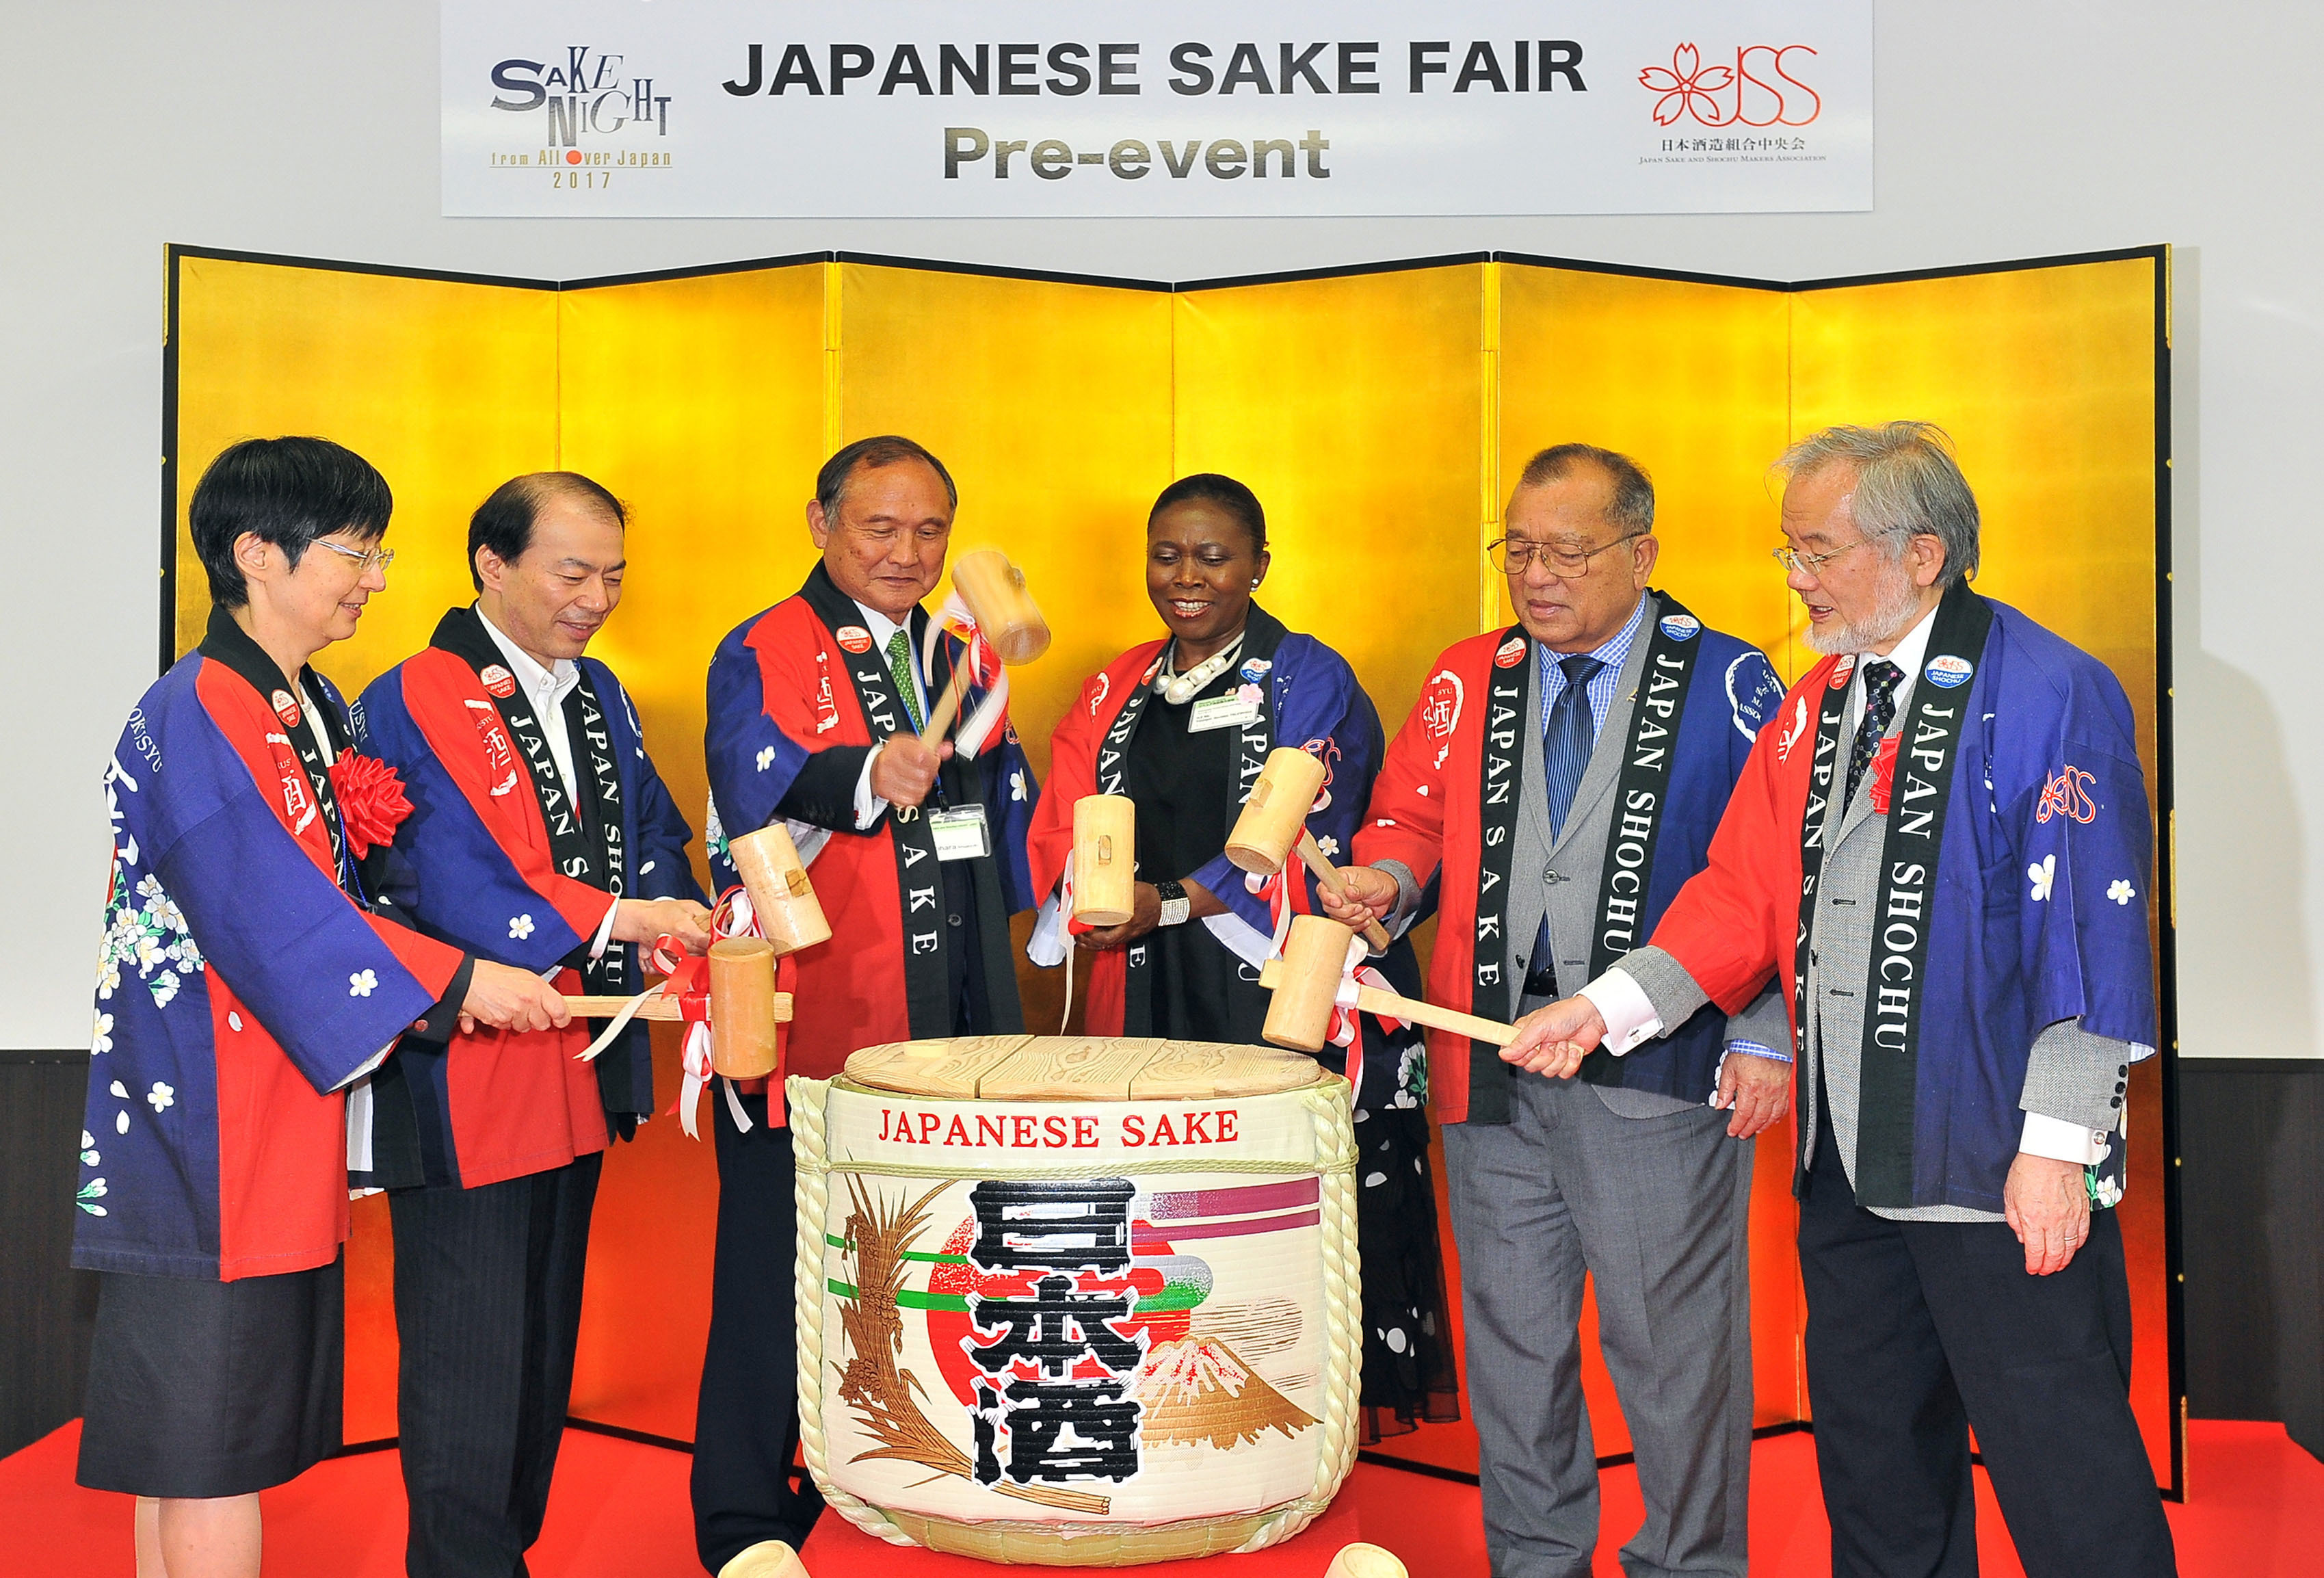 A barrel of sake is broken by guests at Japanese Sake Fair 2017 at Ikebukuro Sunshine City on June 16. Participants are (from left) National Research Institute of Brewing President Nami Goto; Norio Yamana, deputy commissioner of the Commissioner's Secretariat at the National Tax Agency; Shigeyuki Shinohara, chairman of the Japan Sake and Shochu Makers Association; Liberian Ambassador Youngor Sevelee Telewada; Marshall Islands Ambassador Tom Kijiner; and Yoshinori Ohsumi, honorary professor at the Tokyo Institute of Technology and winner of the 2016 Nobel Prize in physiology and medicine. |  YOSHIAKI MIURA